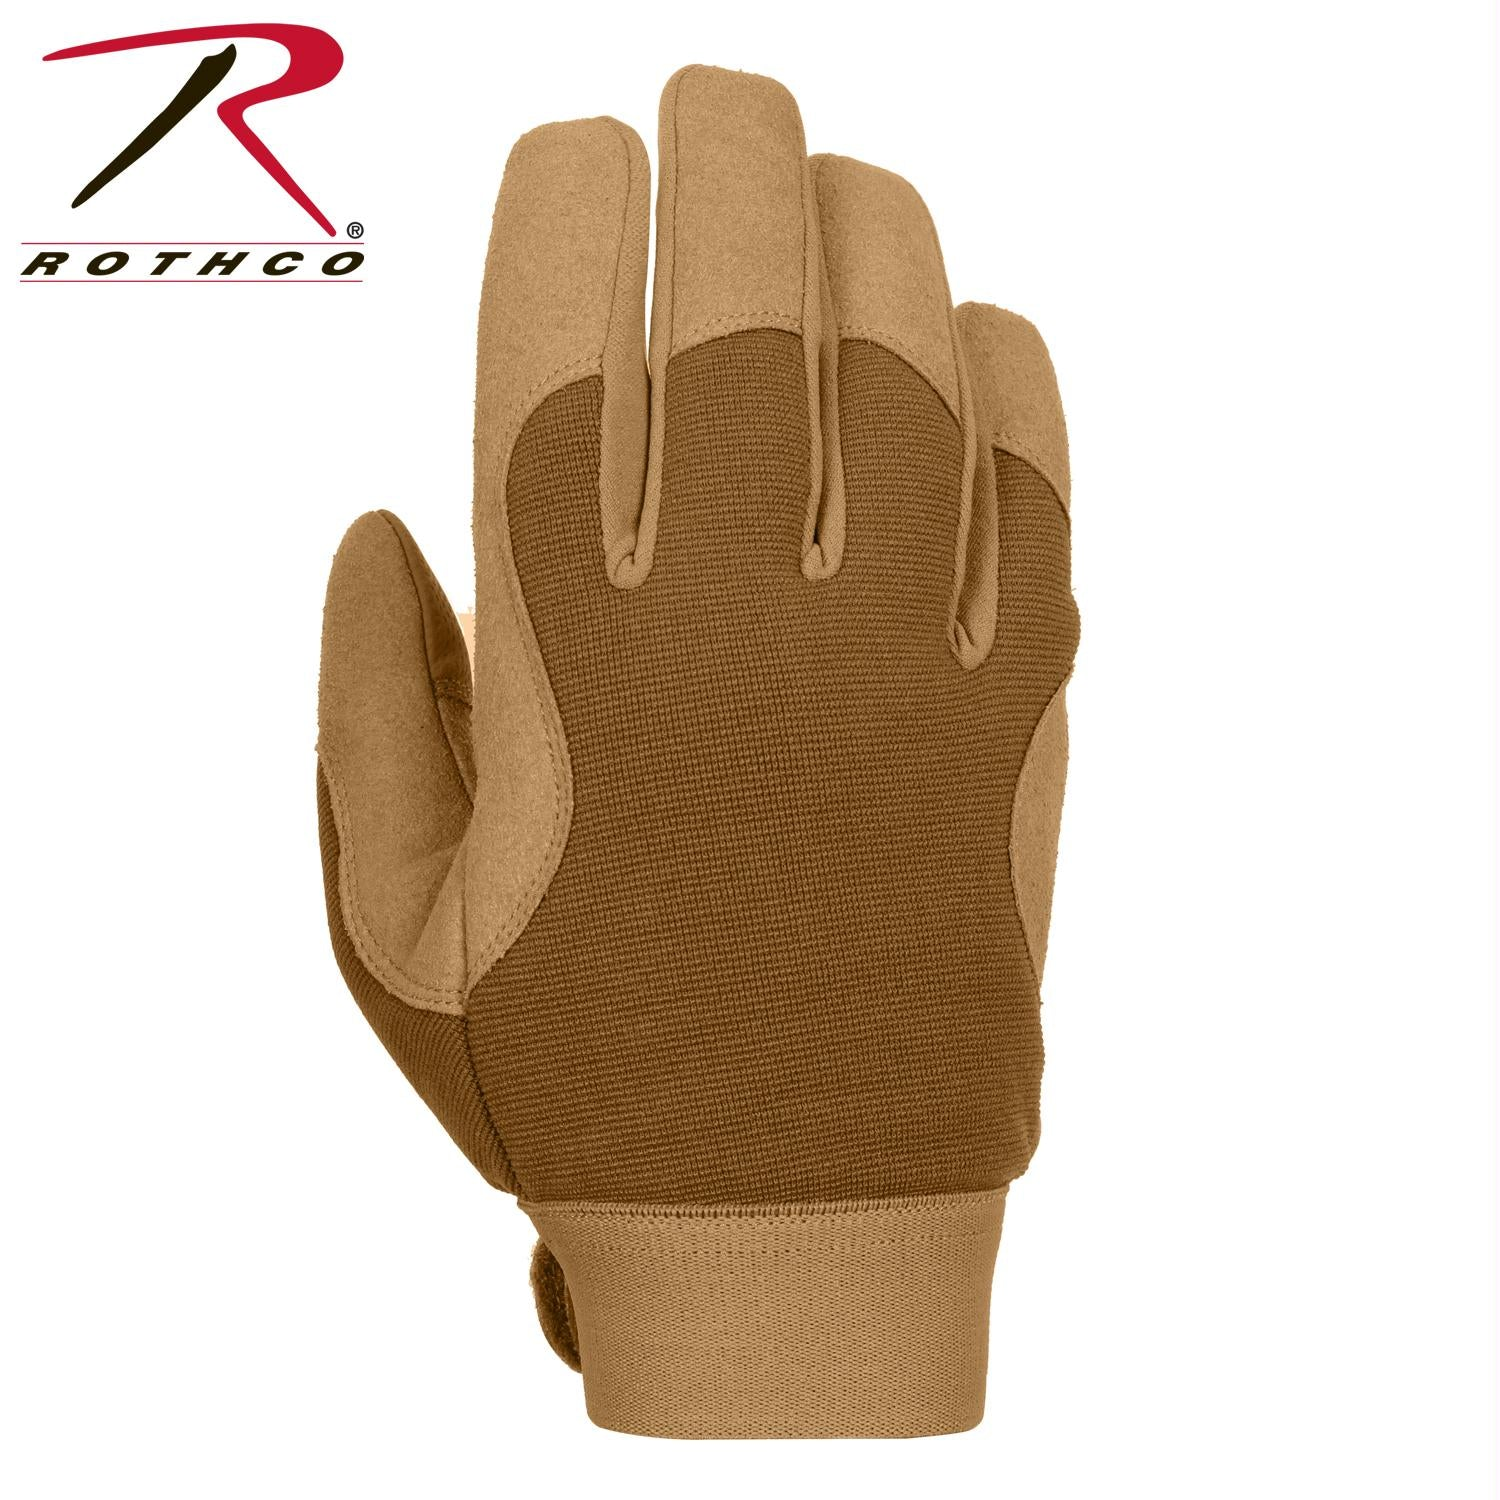 Rothco Military Mechanics Gloves - Coyote Brown / S